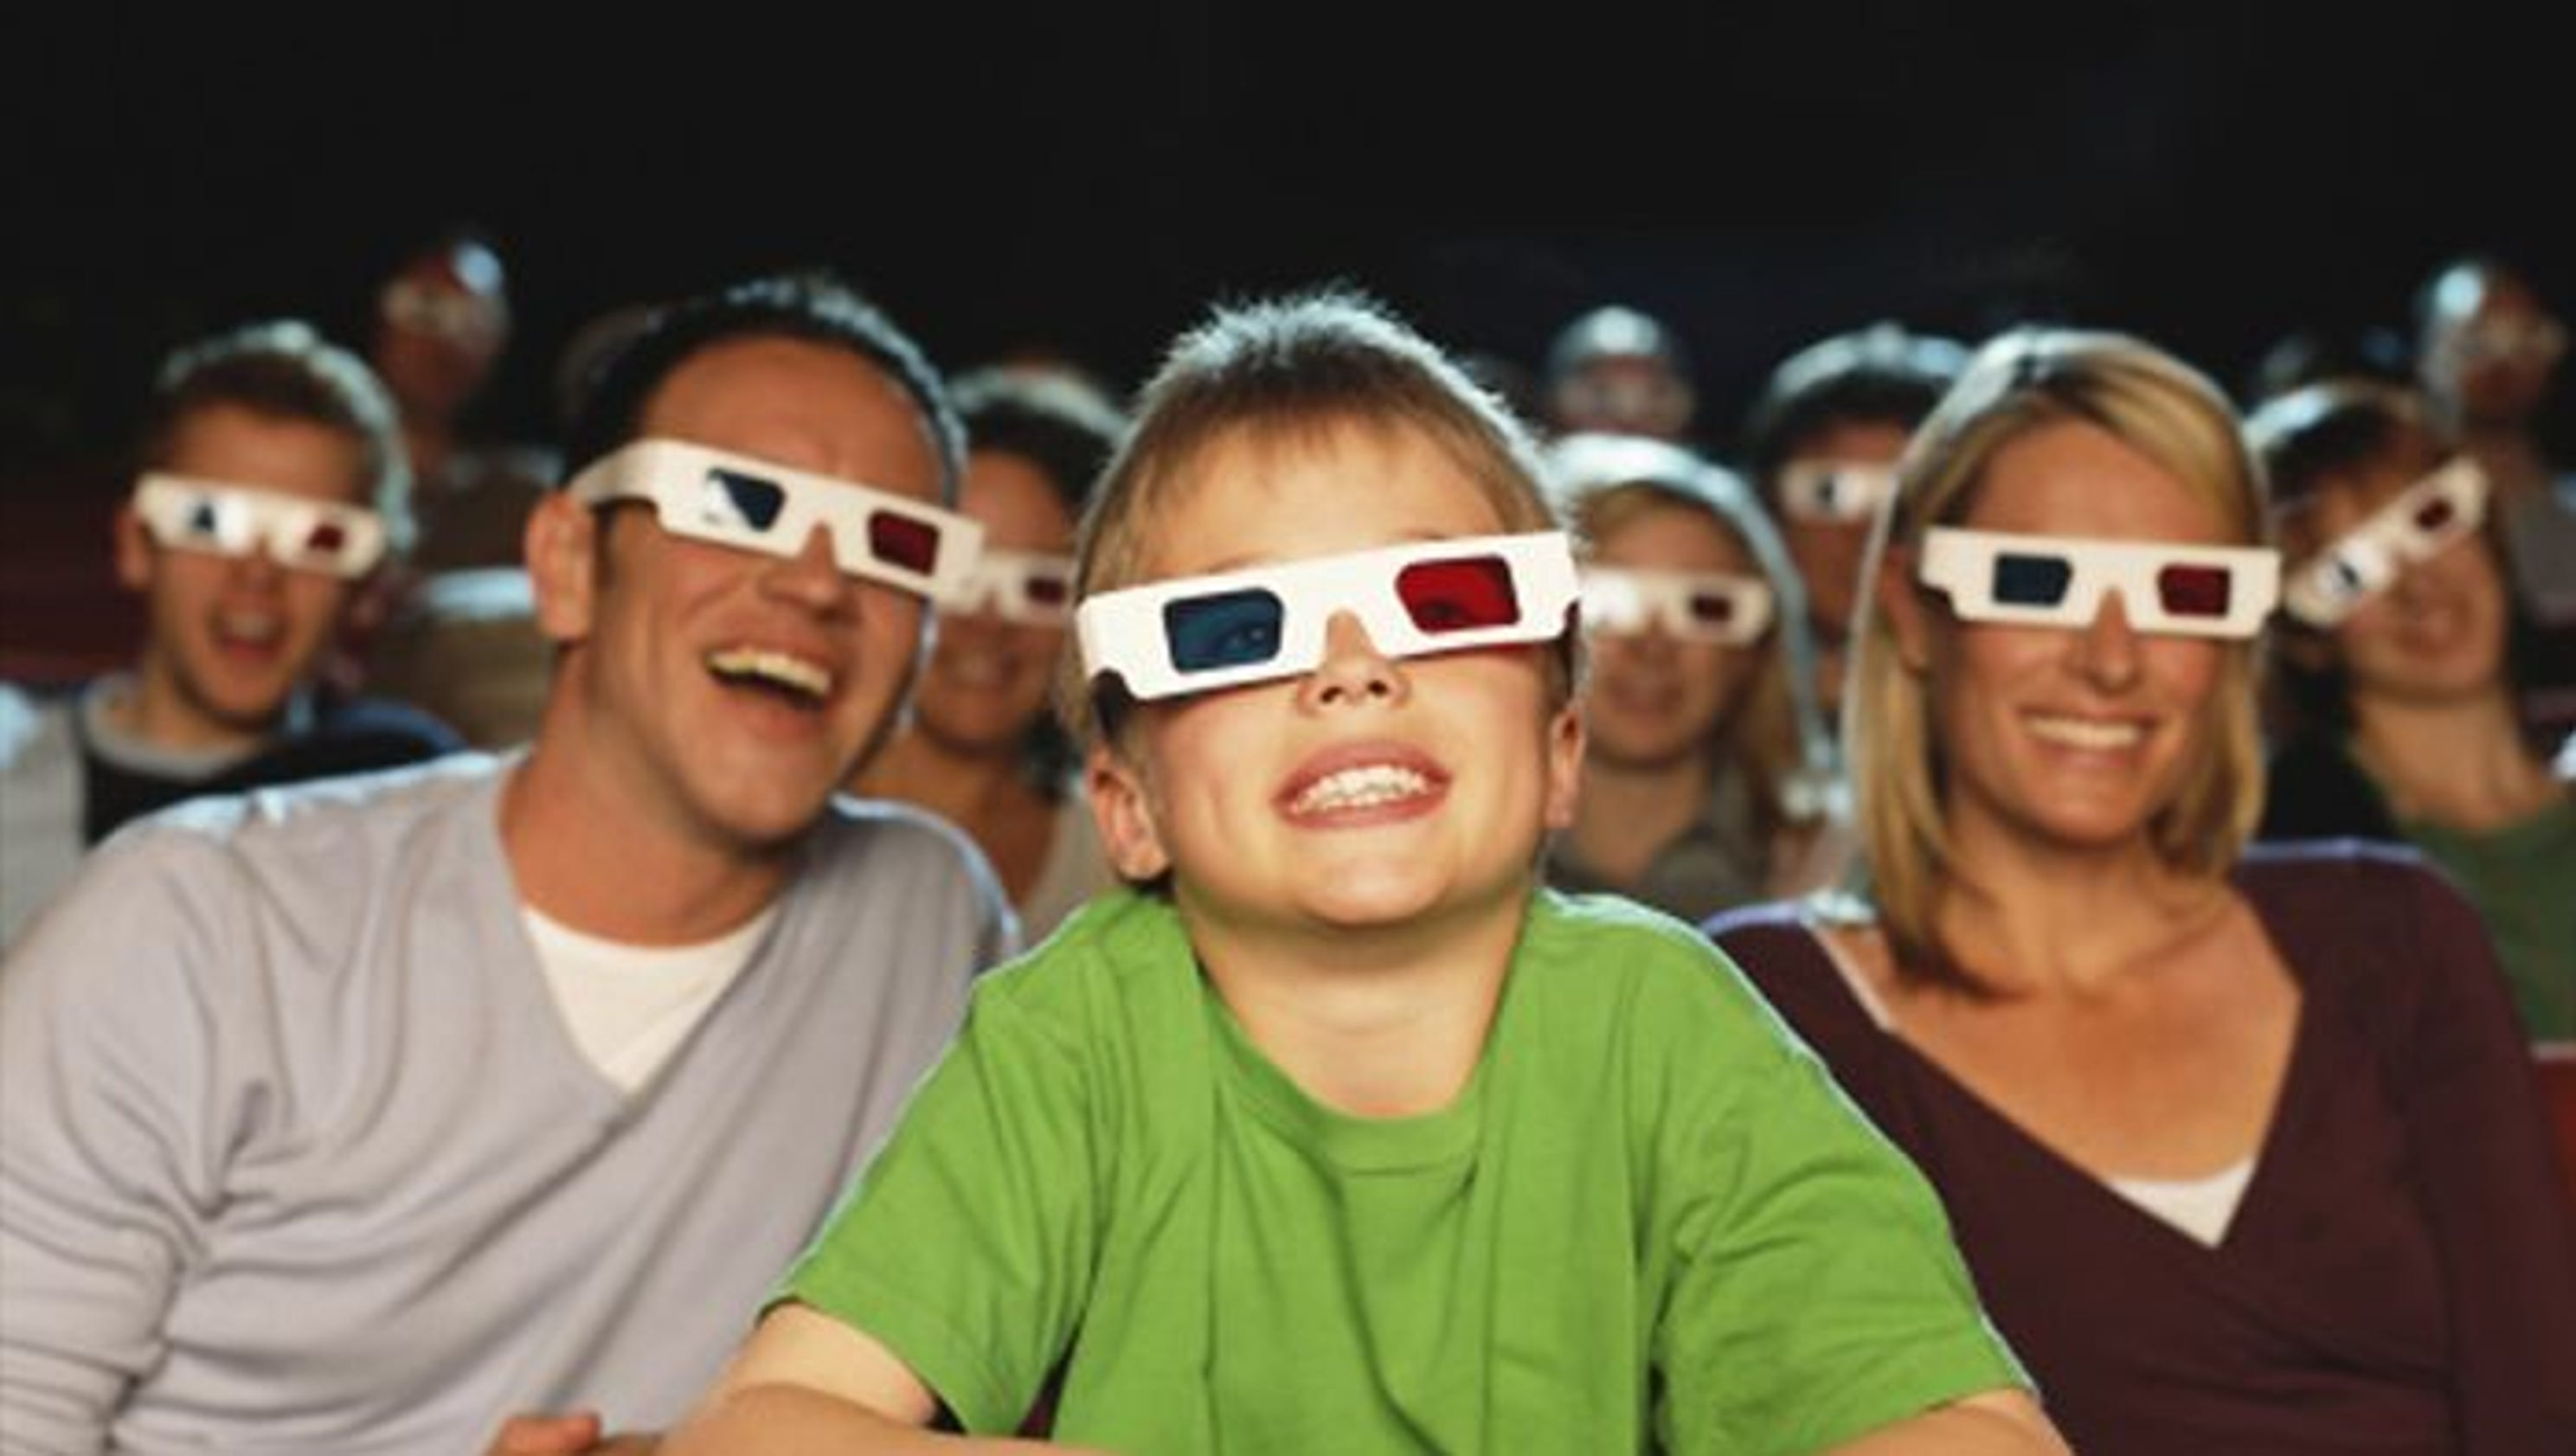 Deals: Save Up To 30% On Movie Tickets